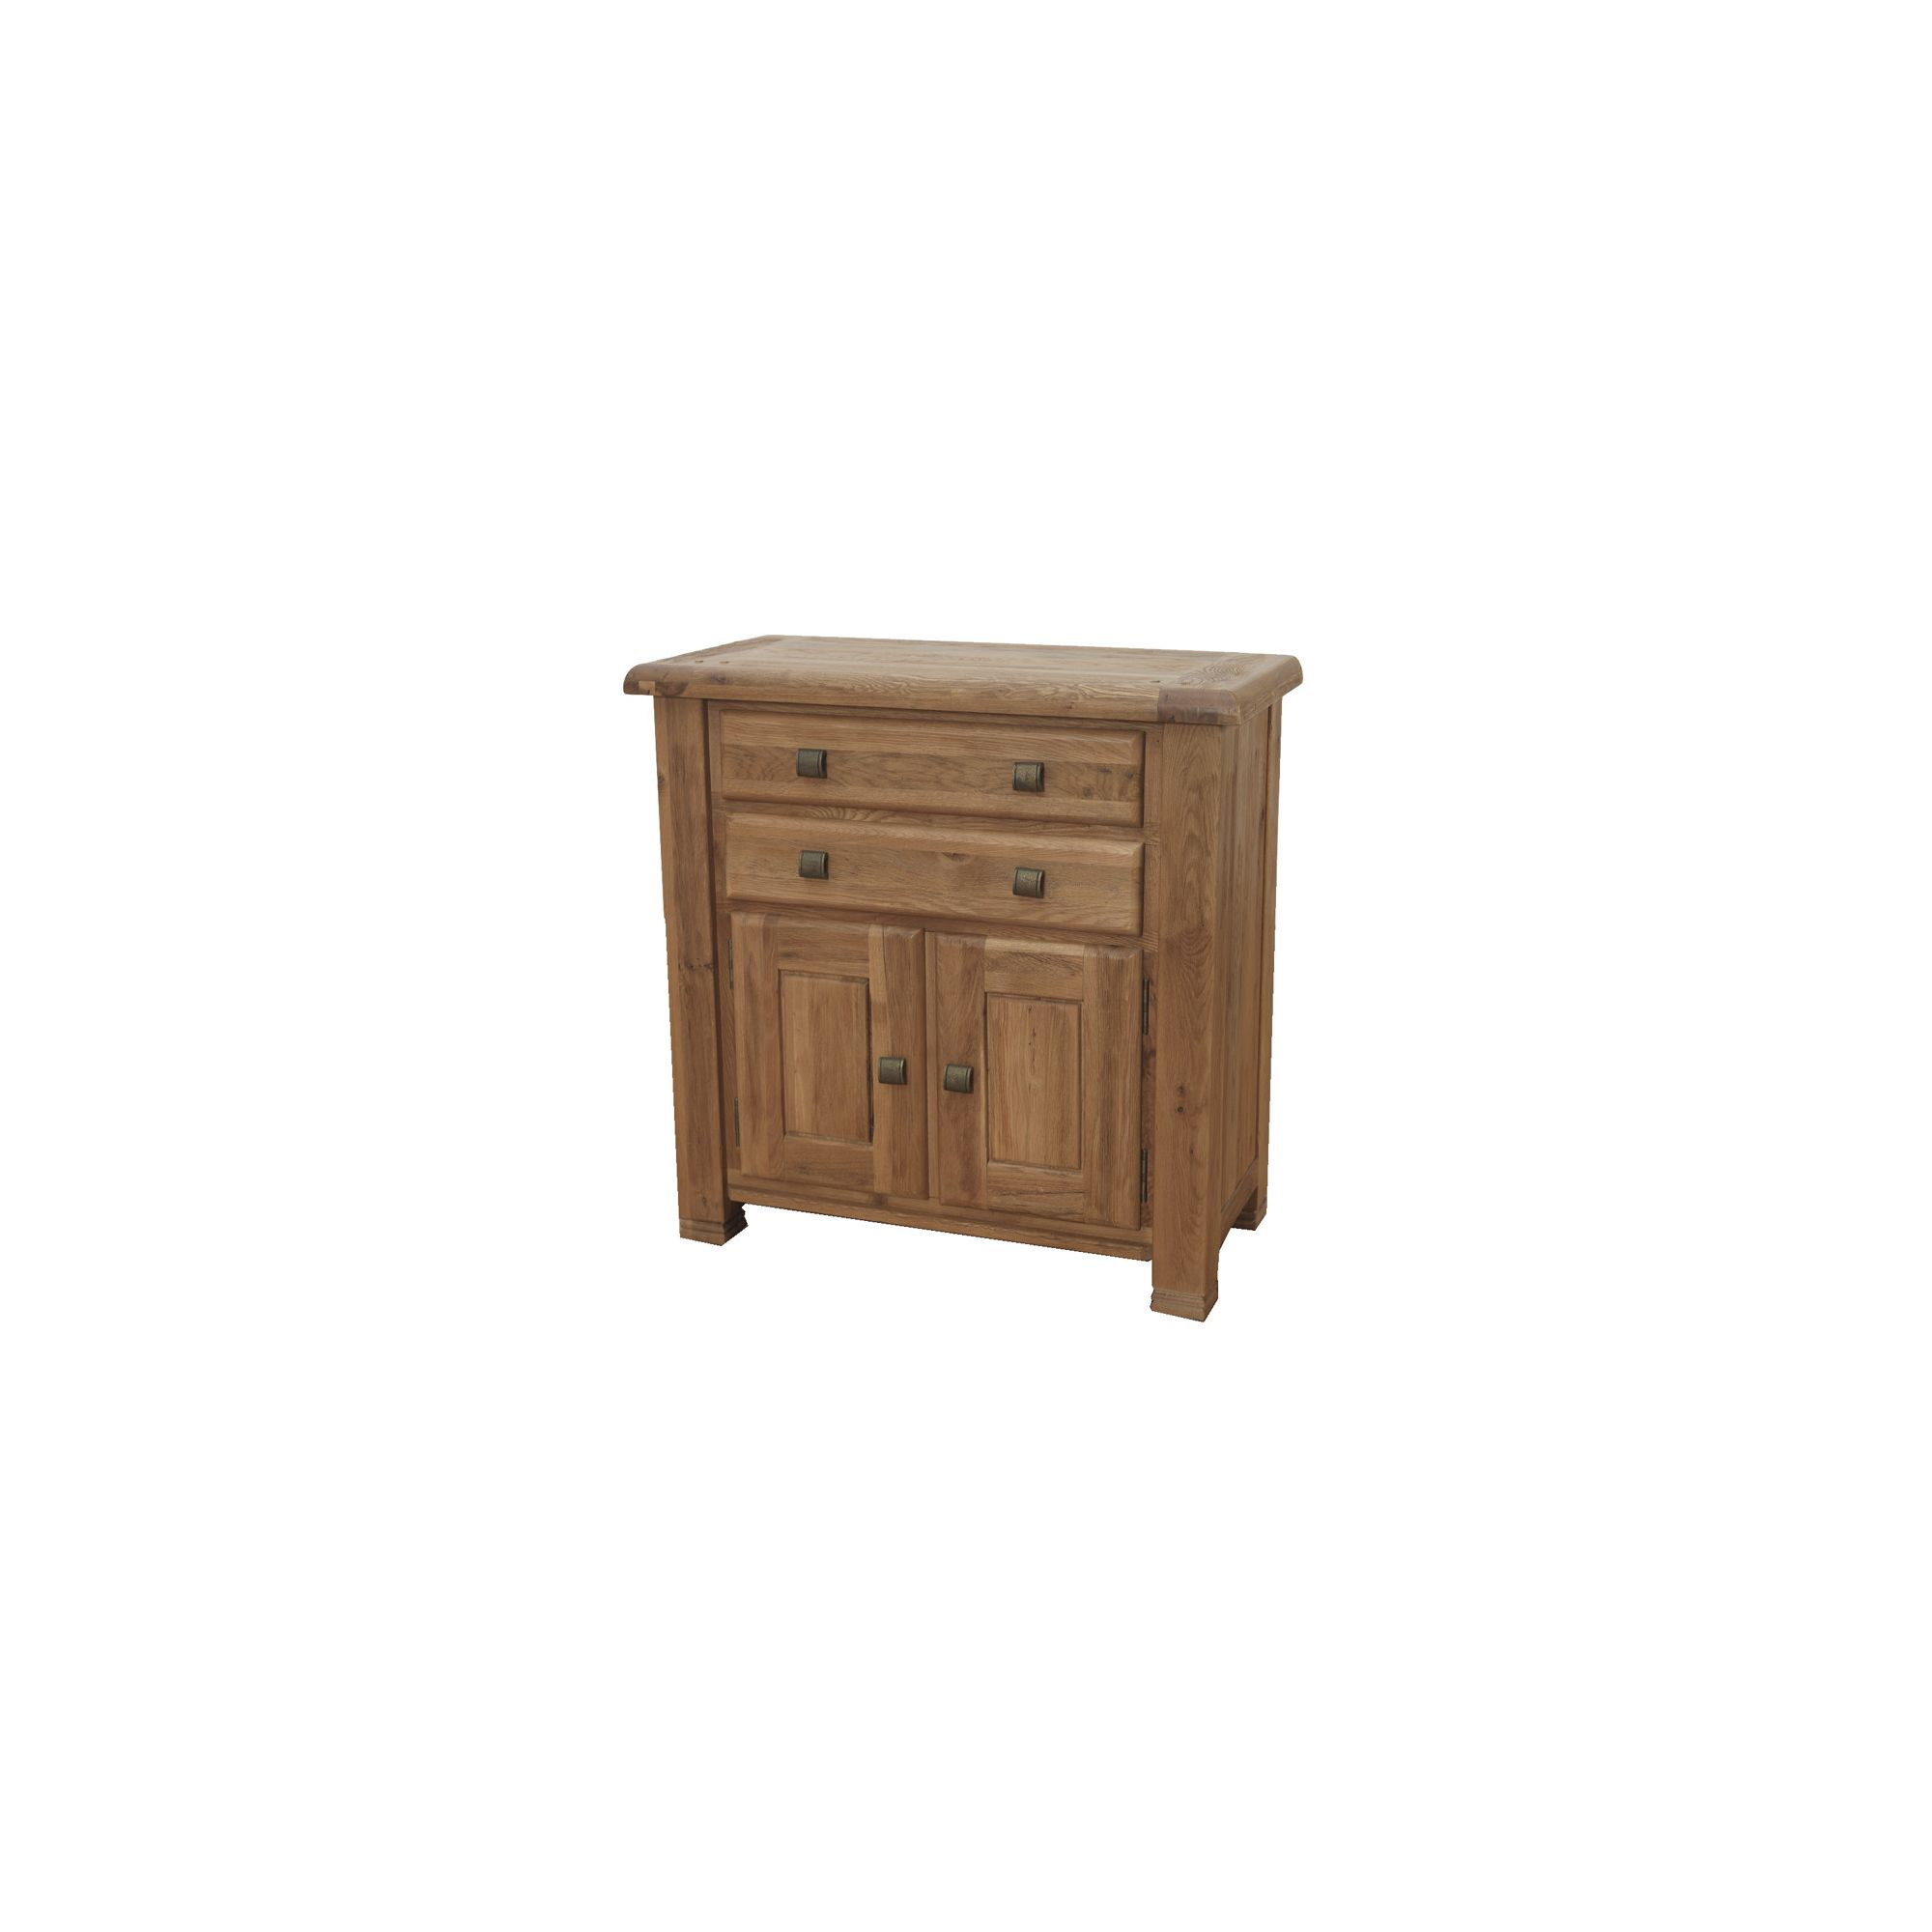 Furniture Link Danube Small Sideboard in Weathered Oak at Tesco Direct